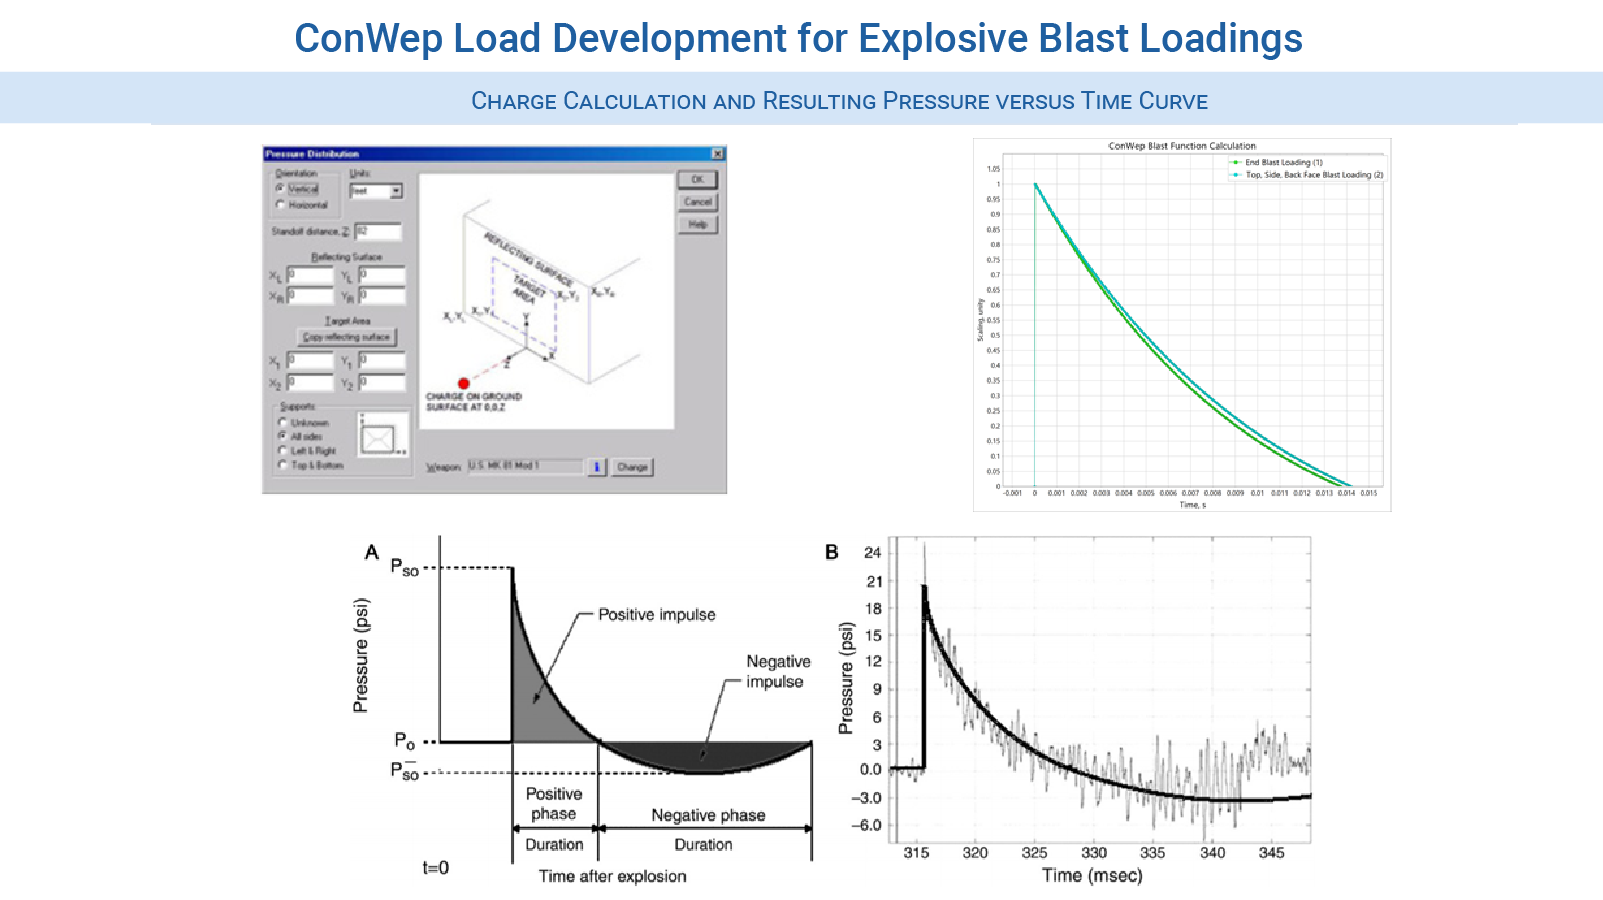 Nonlinear Consulting Services - ConWep Blast Development for nonlinear transient LS-DYNA analysis